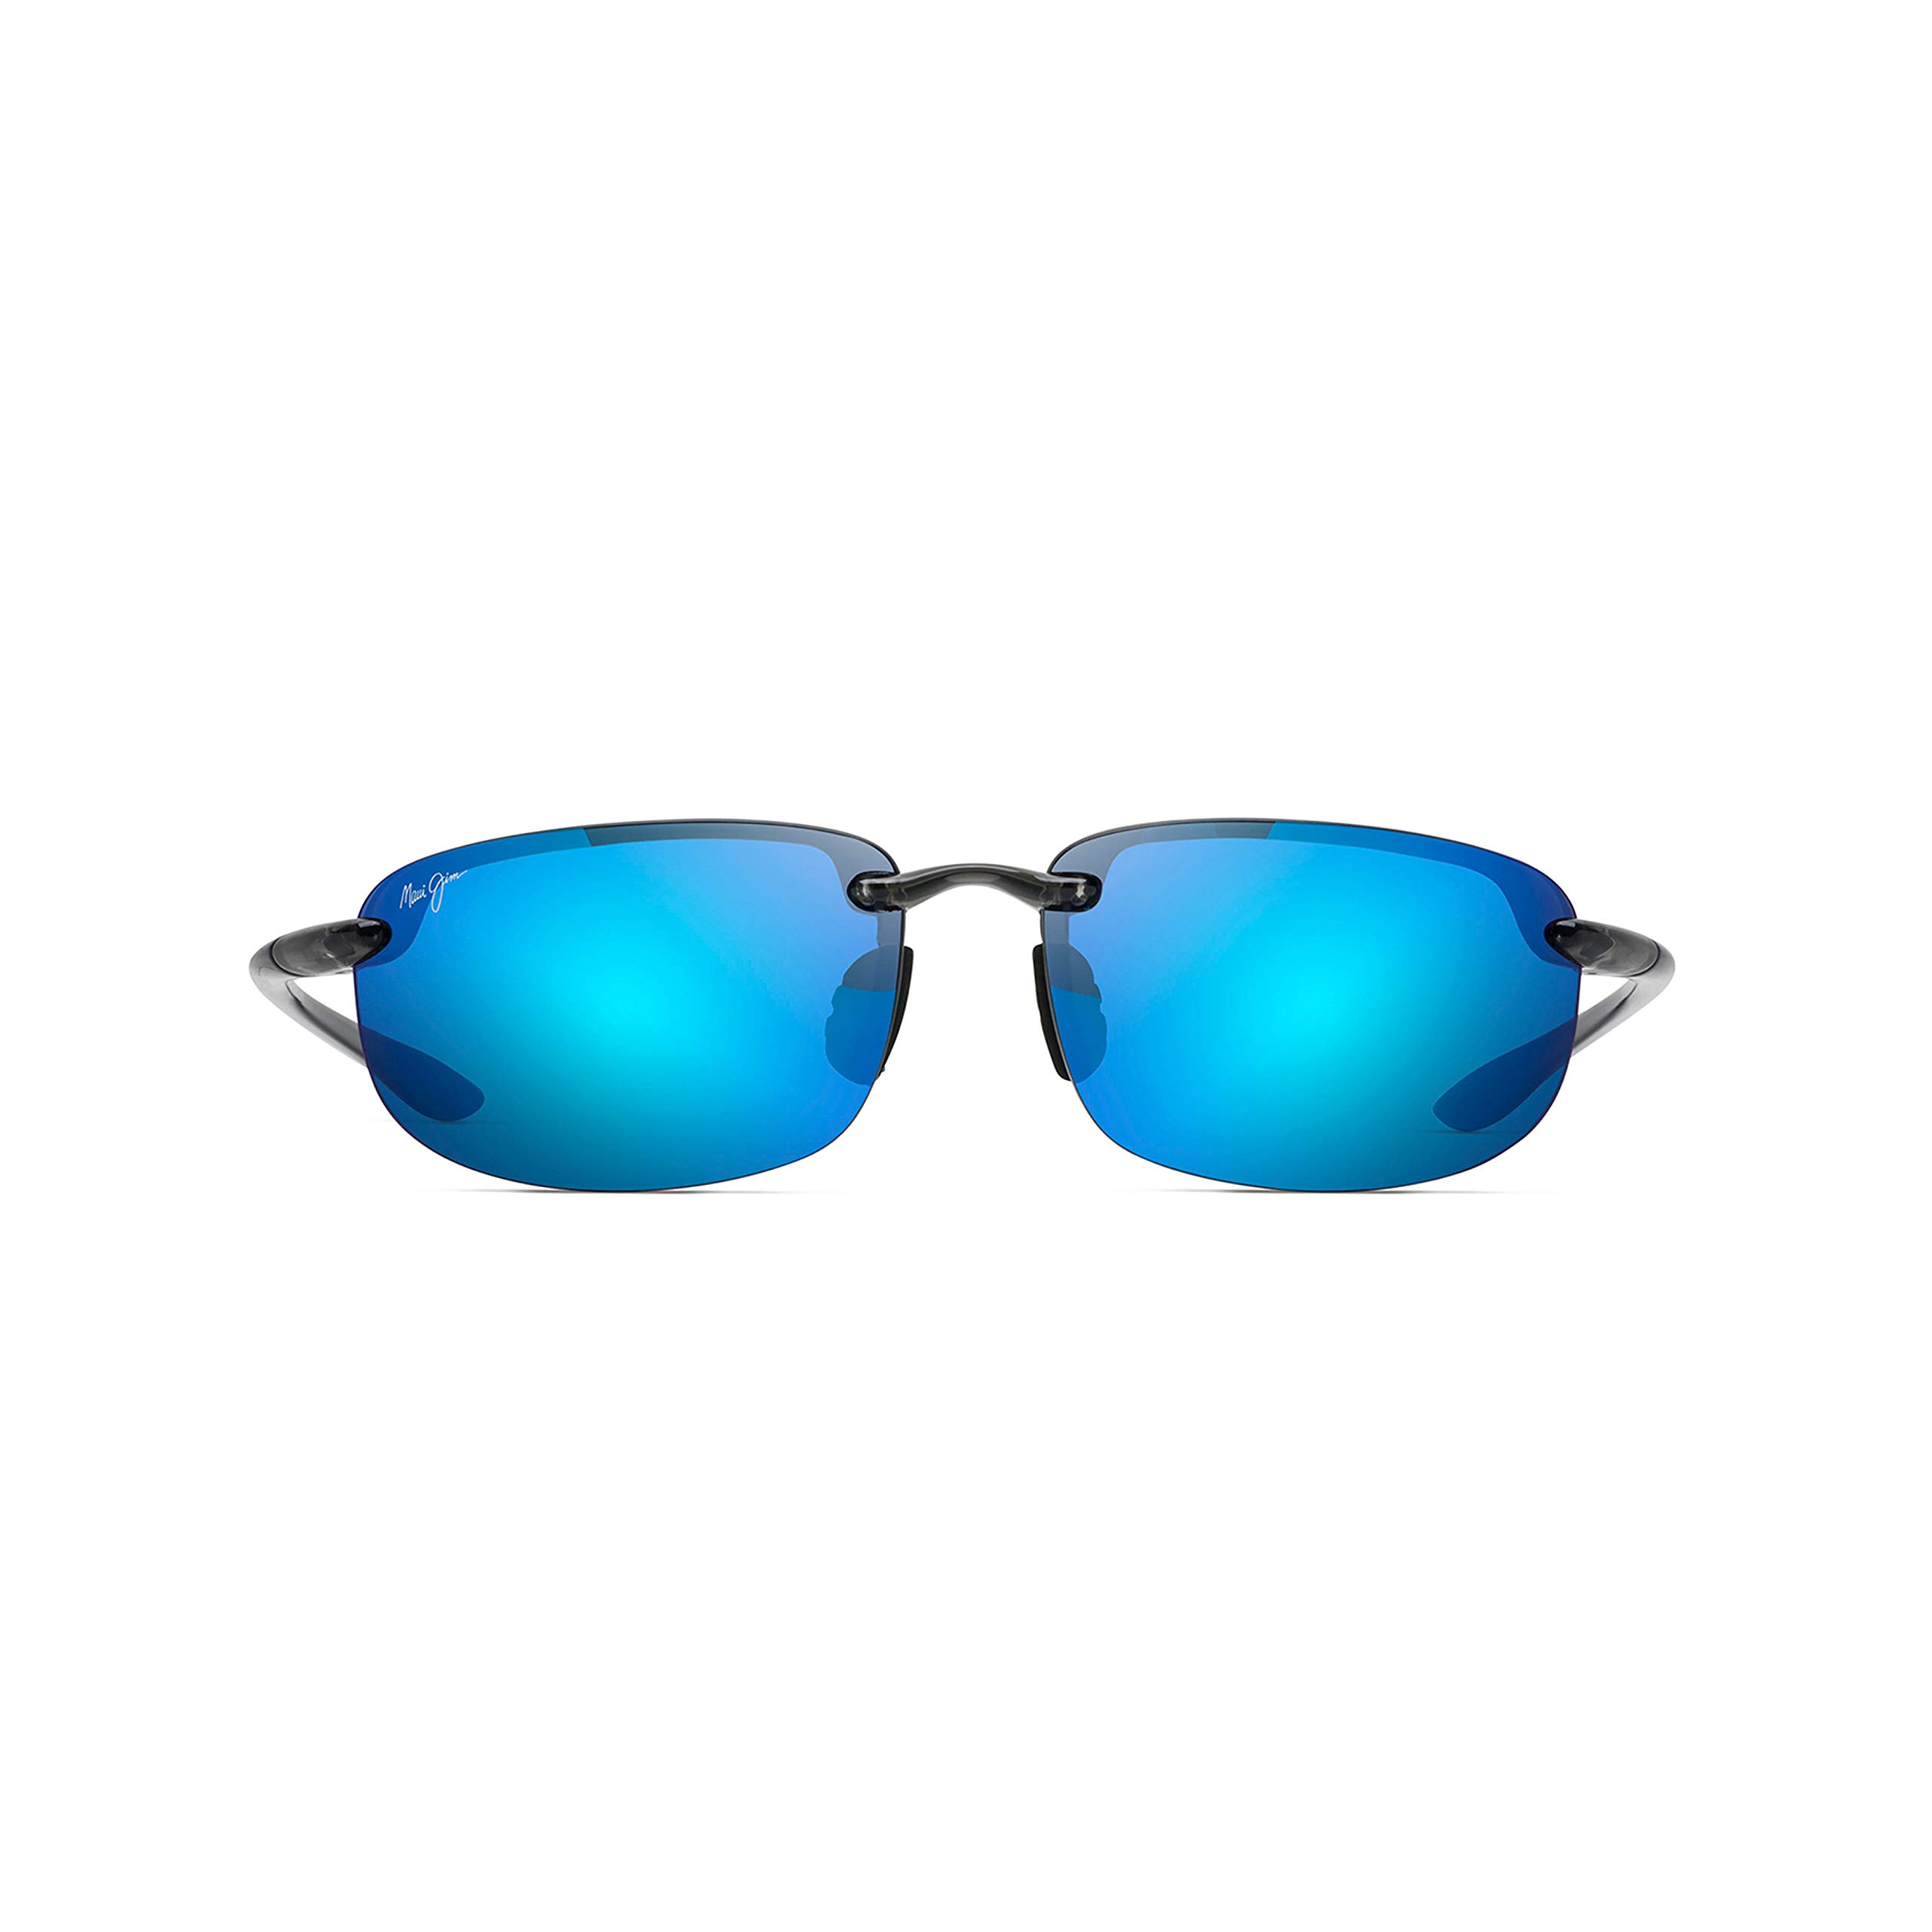 4d360c1f68c Maui Jim Sunglasses